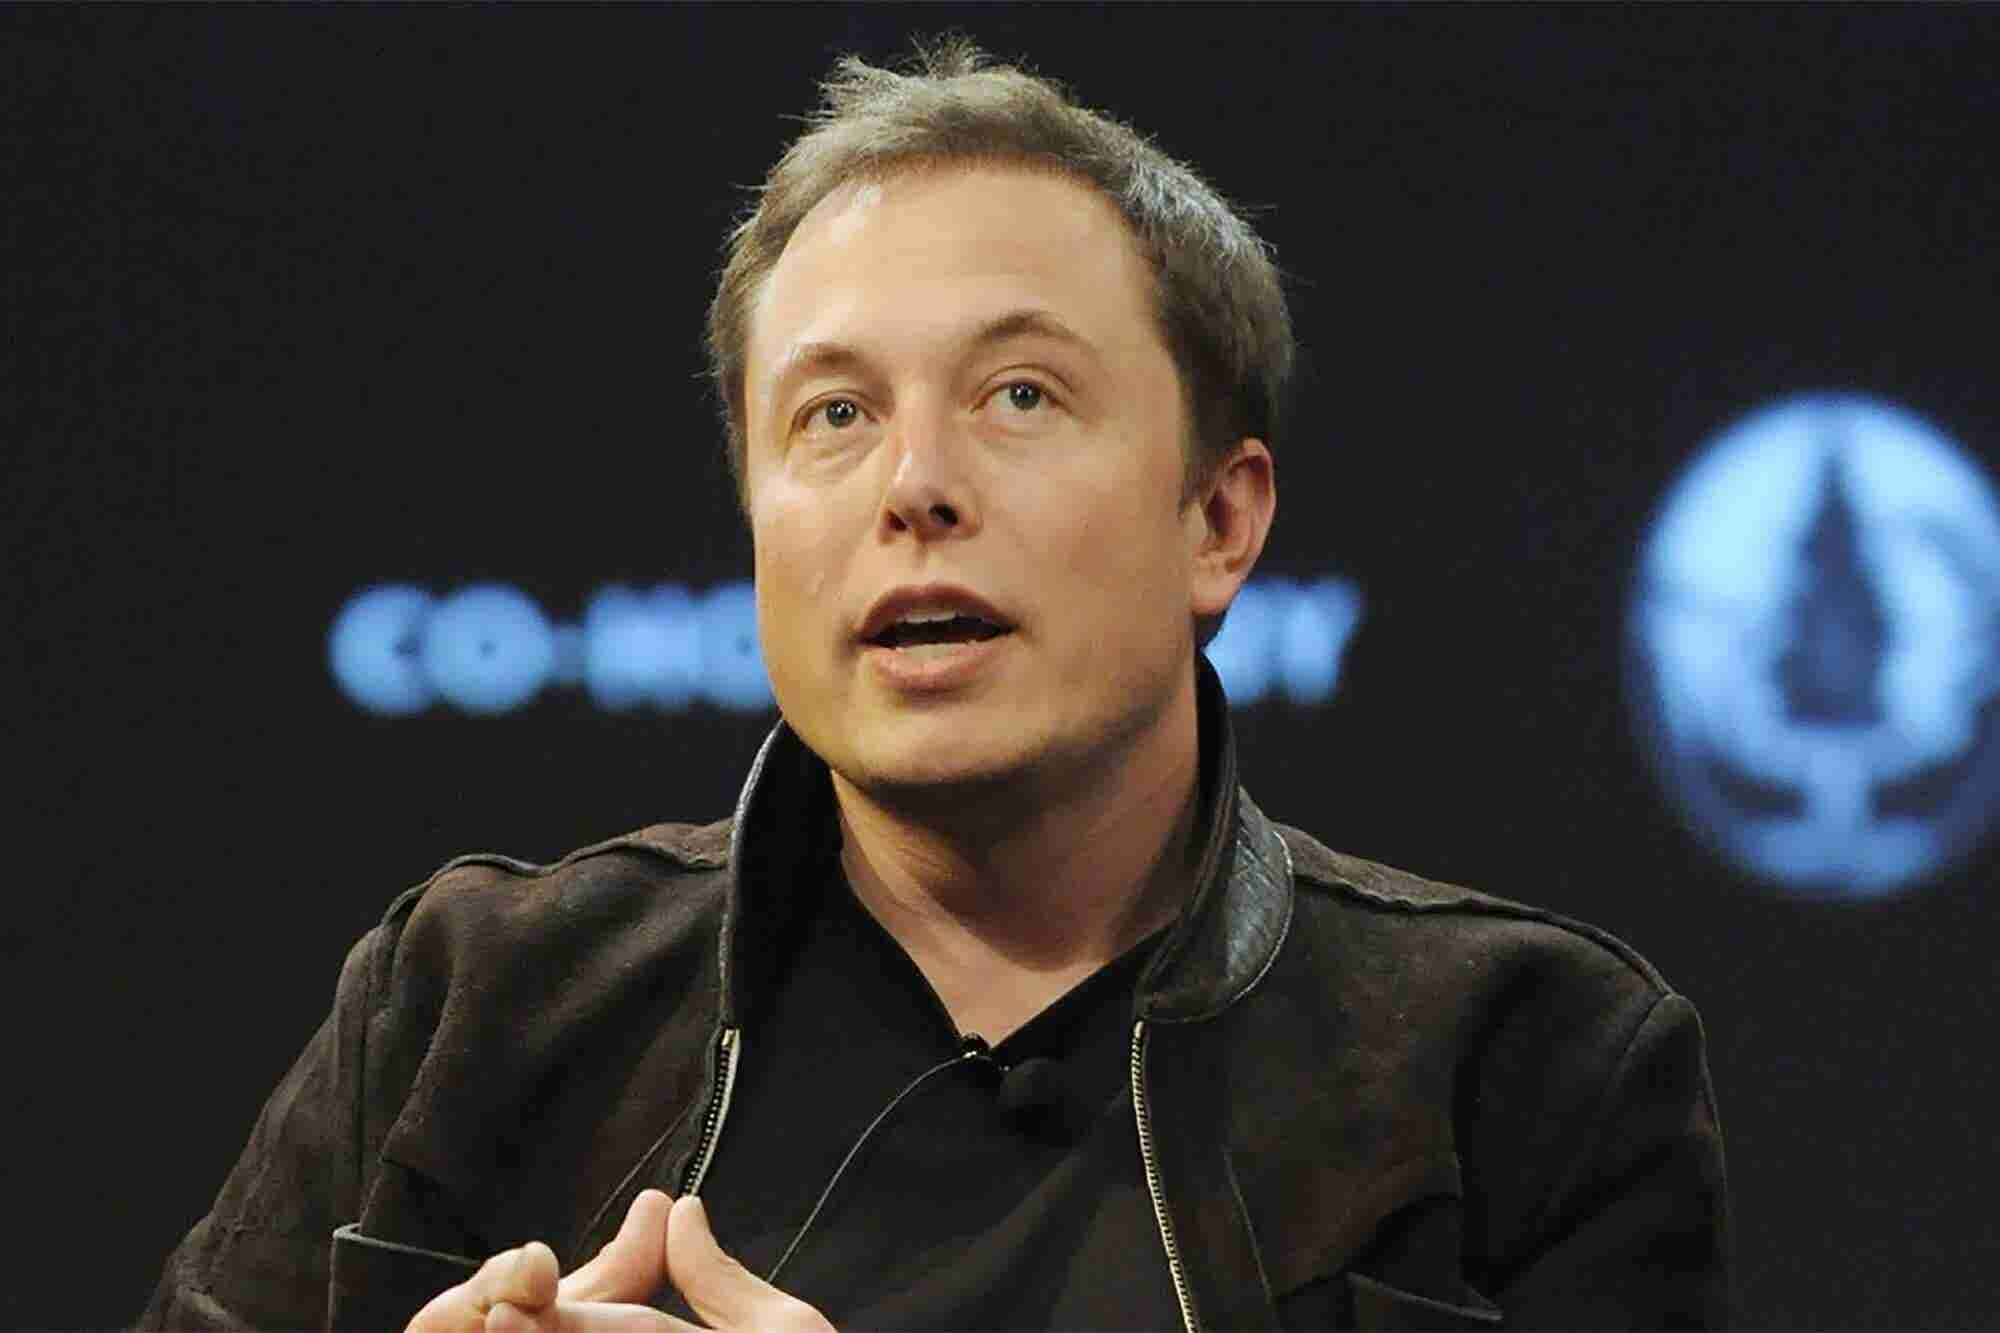 Steal These 10 Awesome Life Hacks From Elon Musk